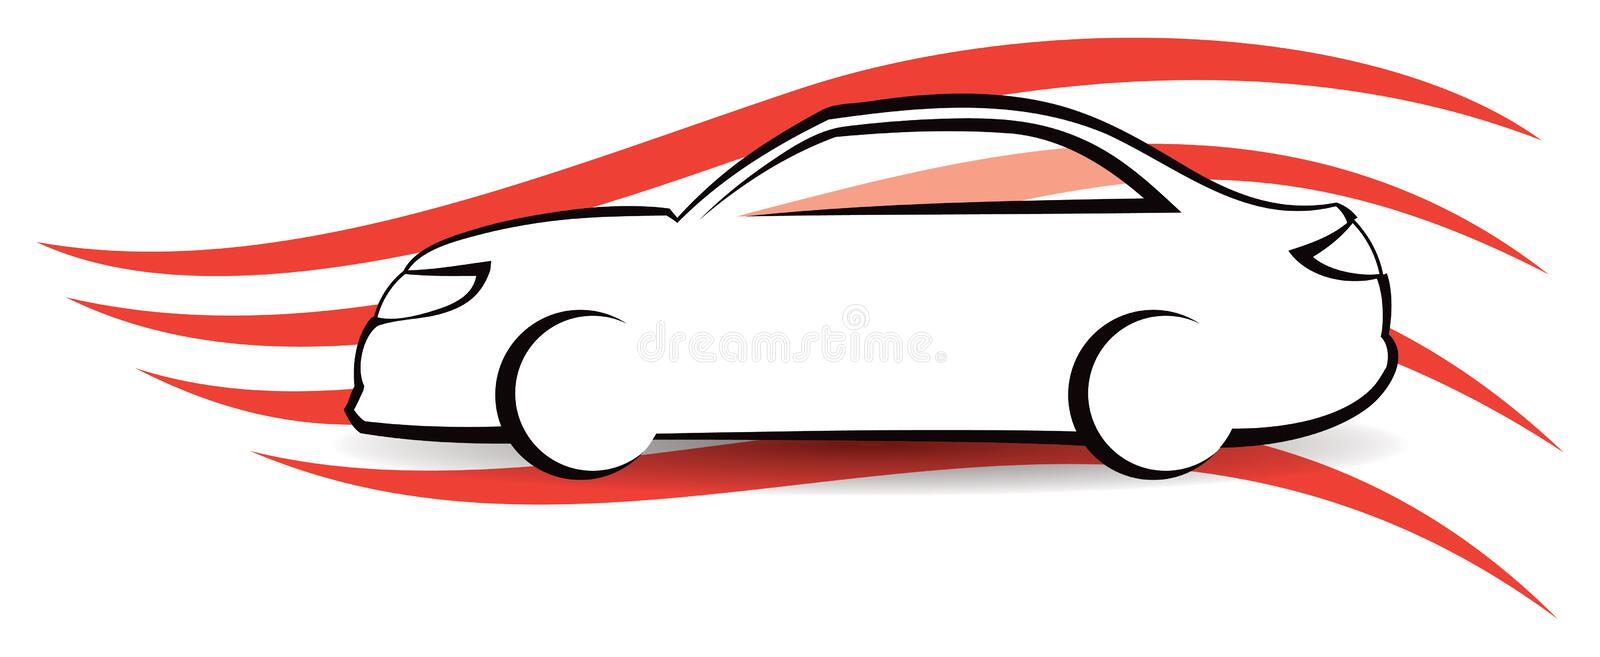 Logotipo del coche libre illustration